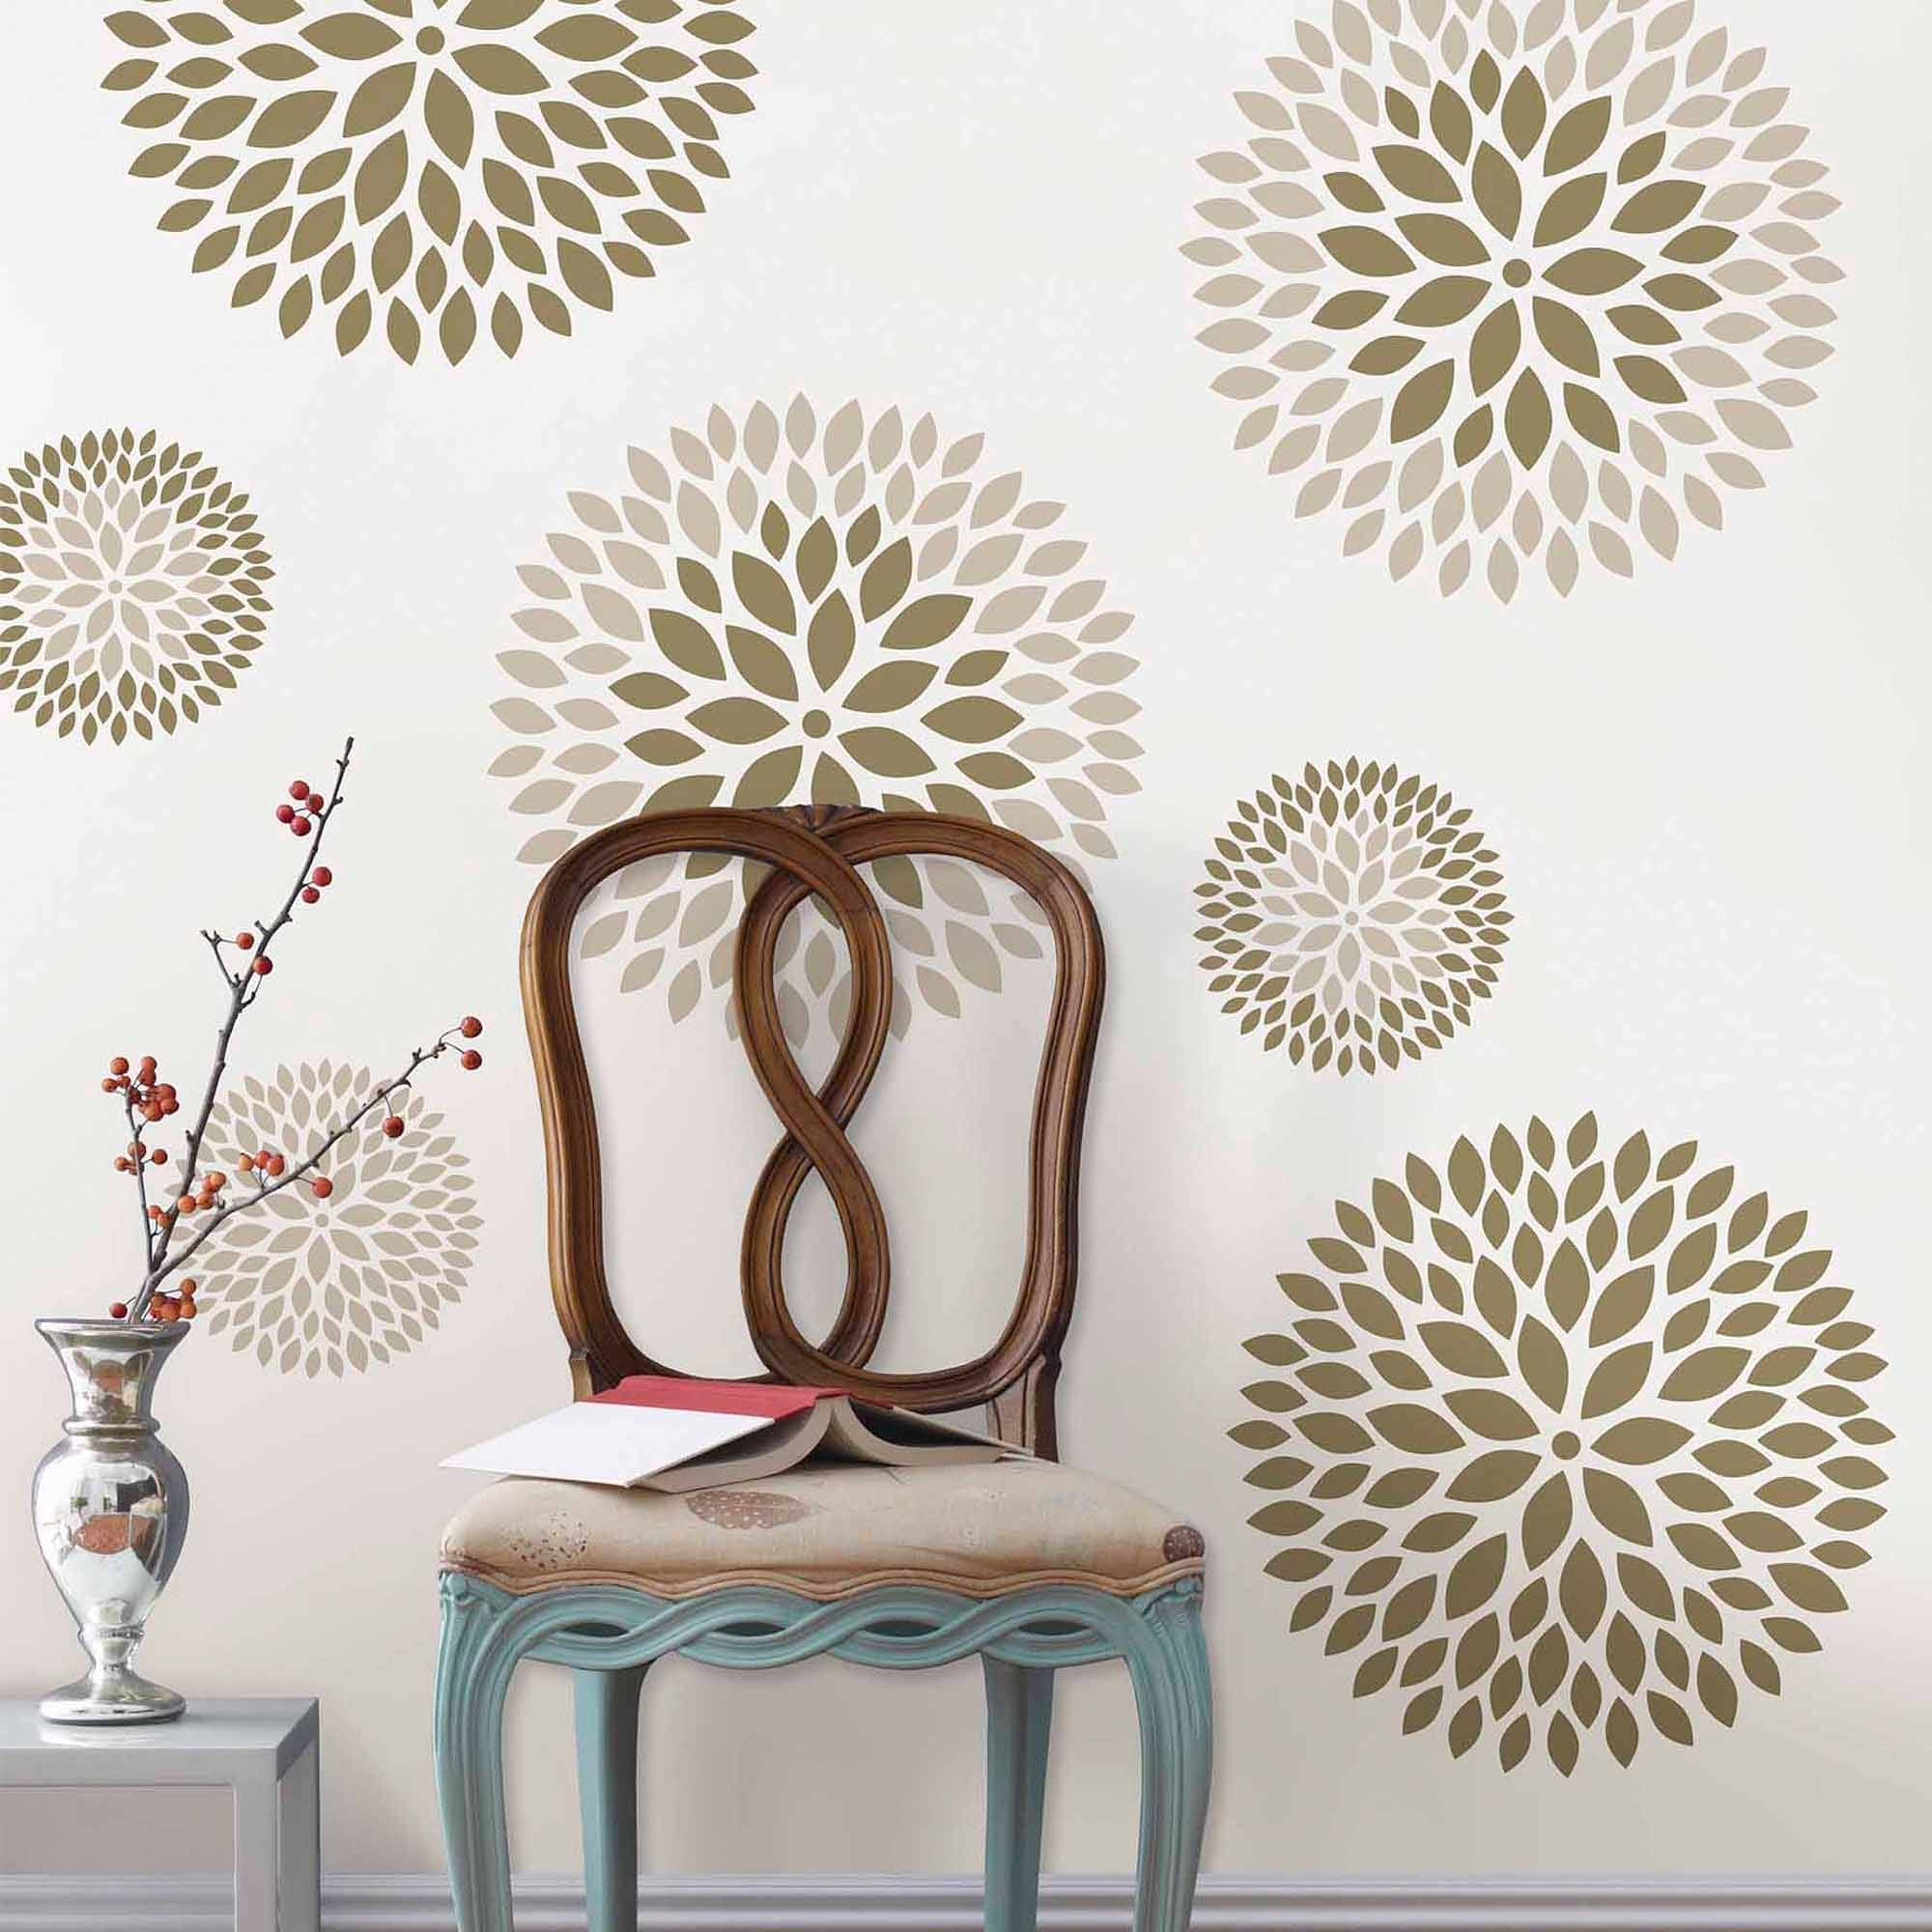 Wallpops Chrysanthemum Wall Art Decals Kit – Walmart Regarding Most Recently Released Pattern Wall Art (View 3 of 20)